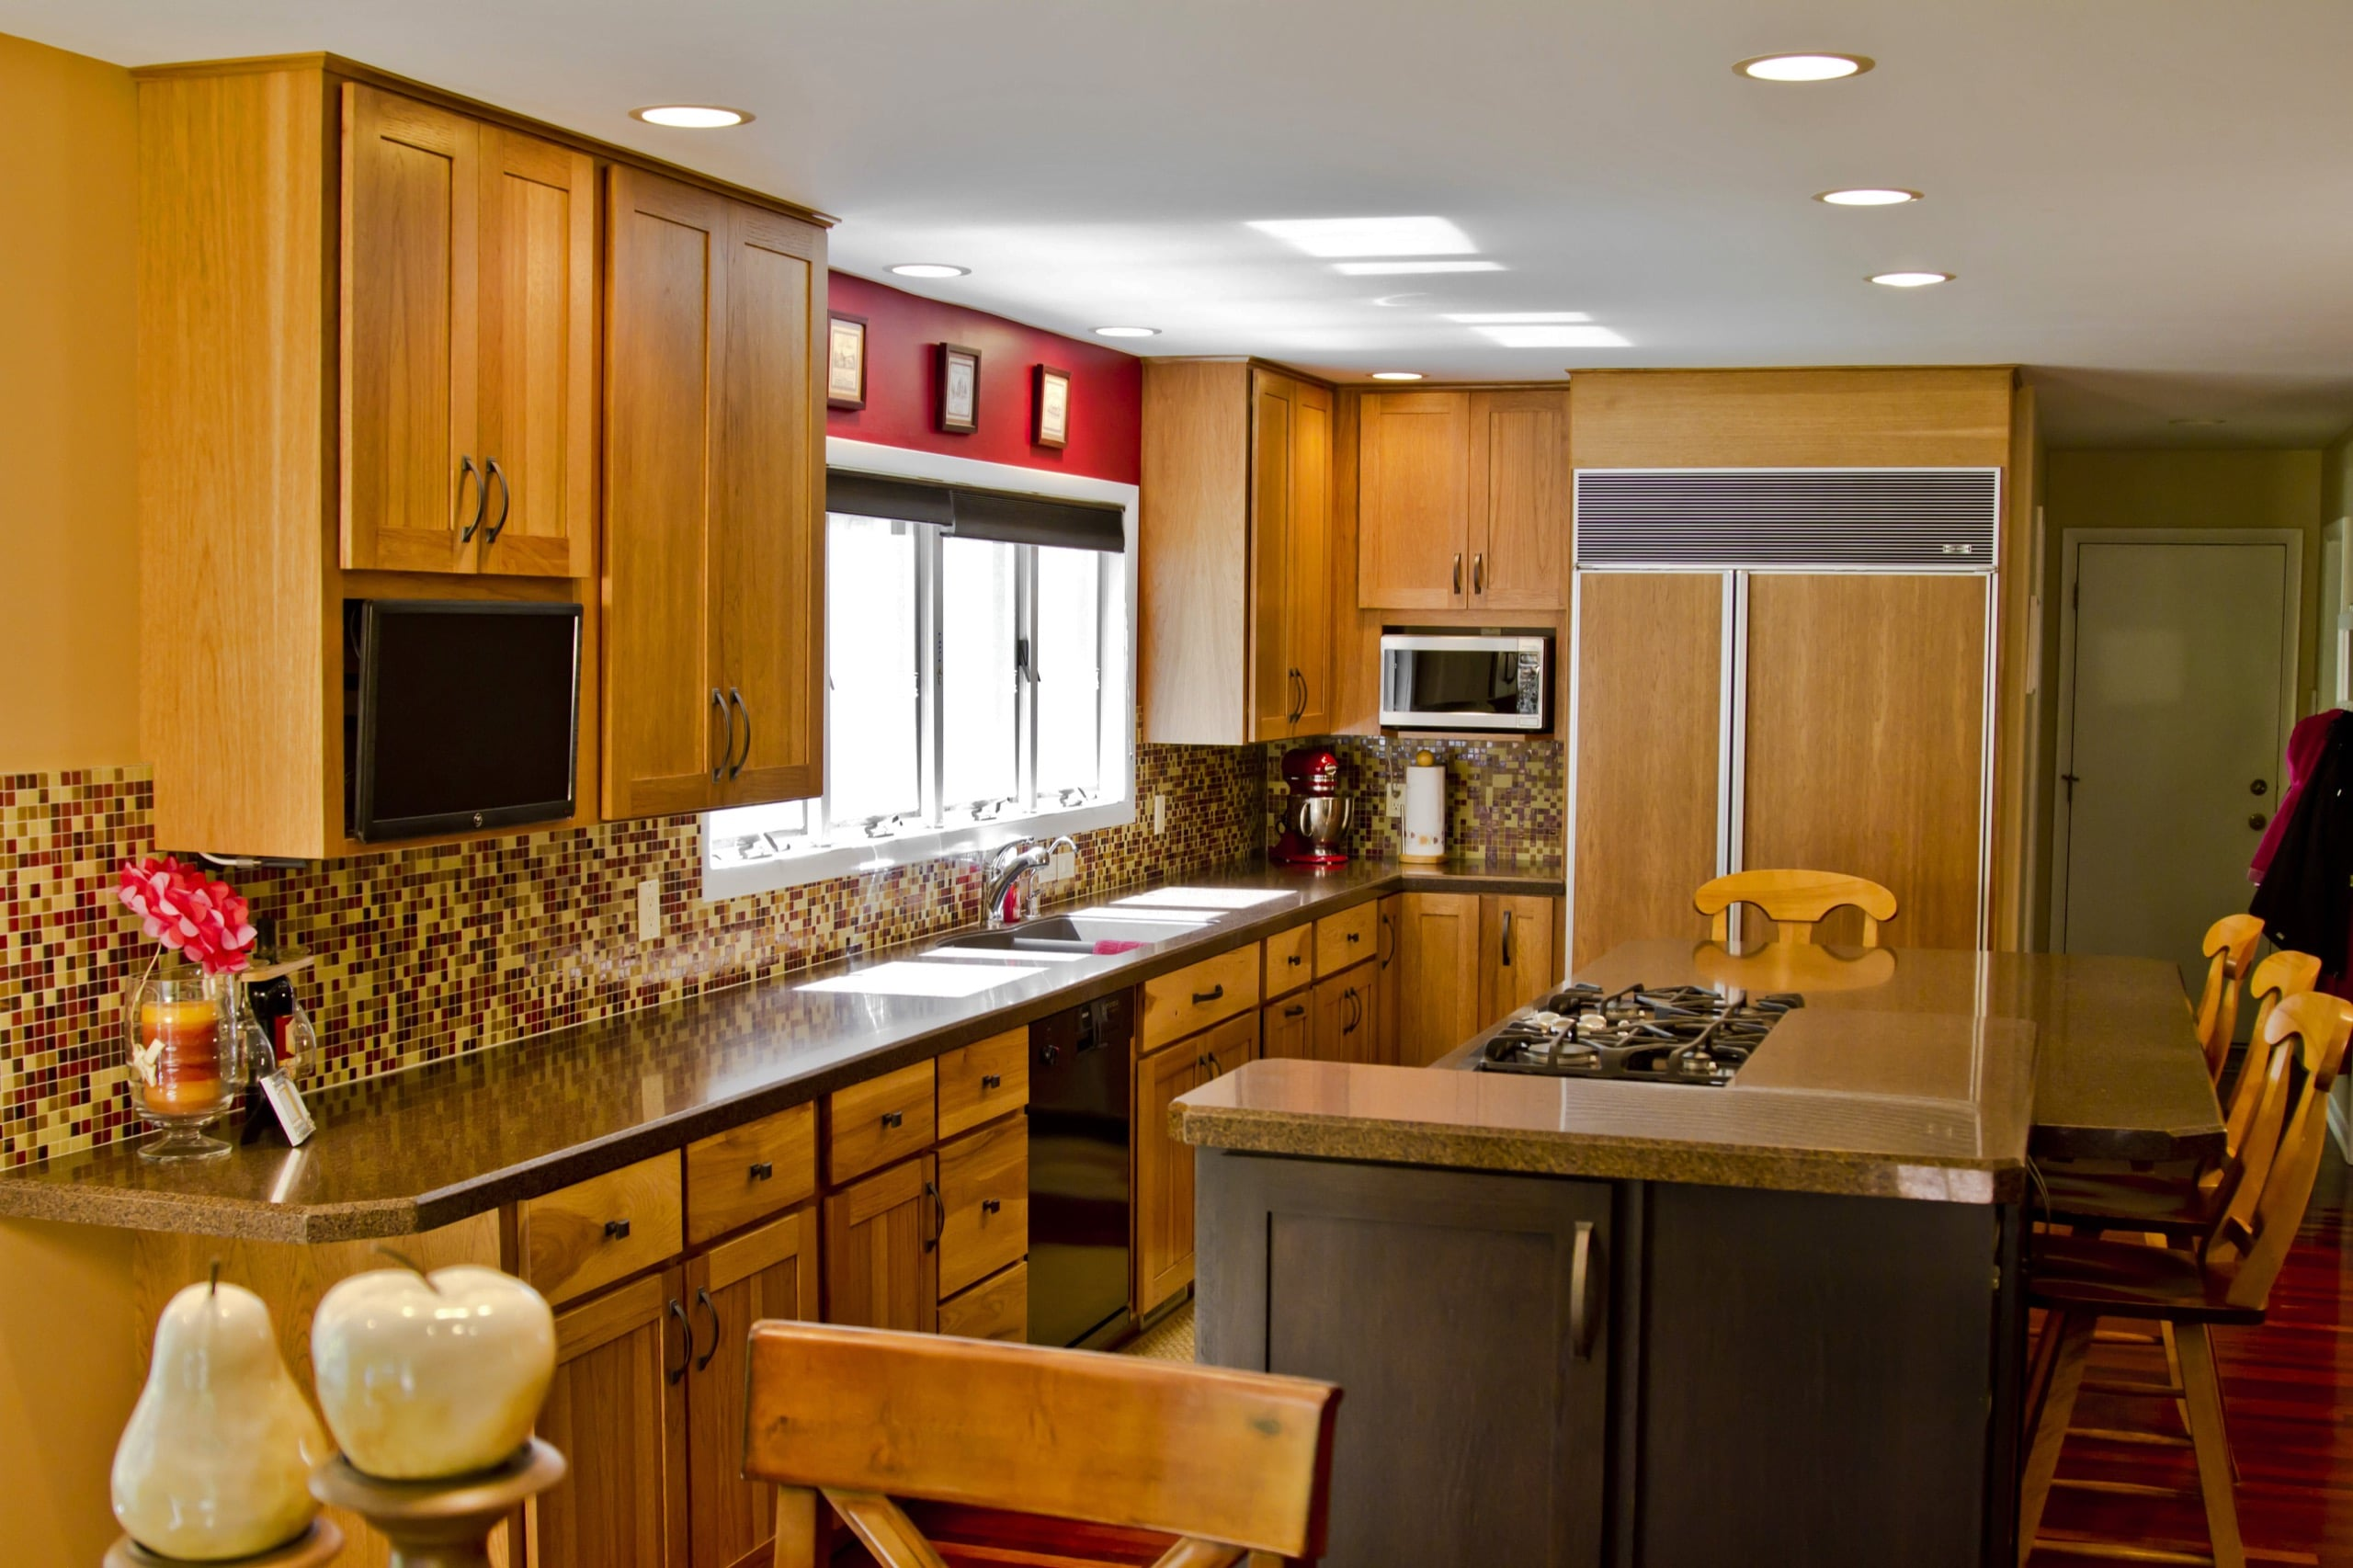 Kitchens By Katie Kitchen Cabinet Refacing